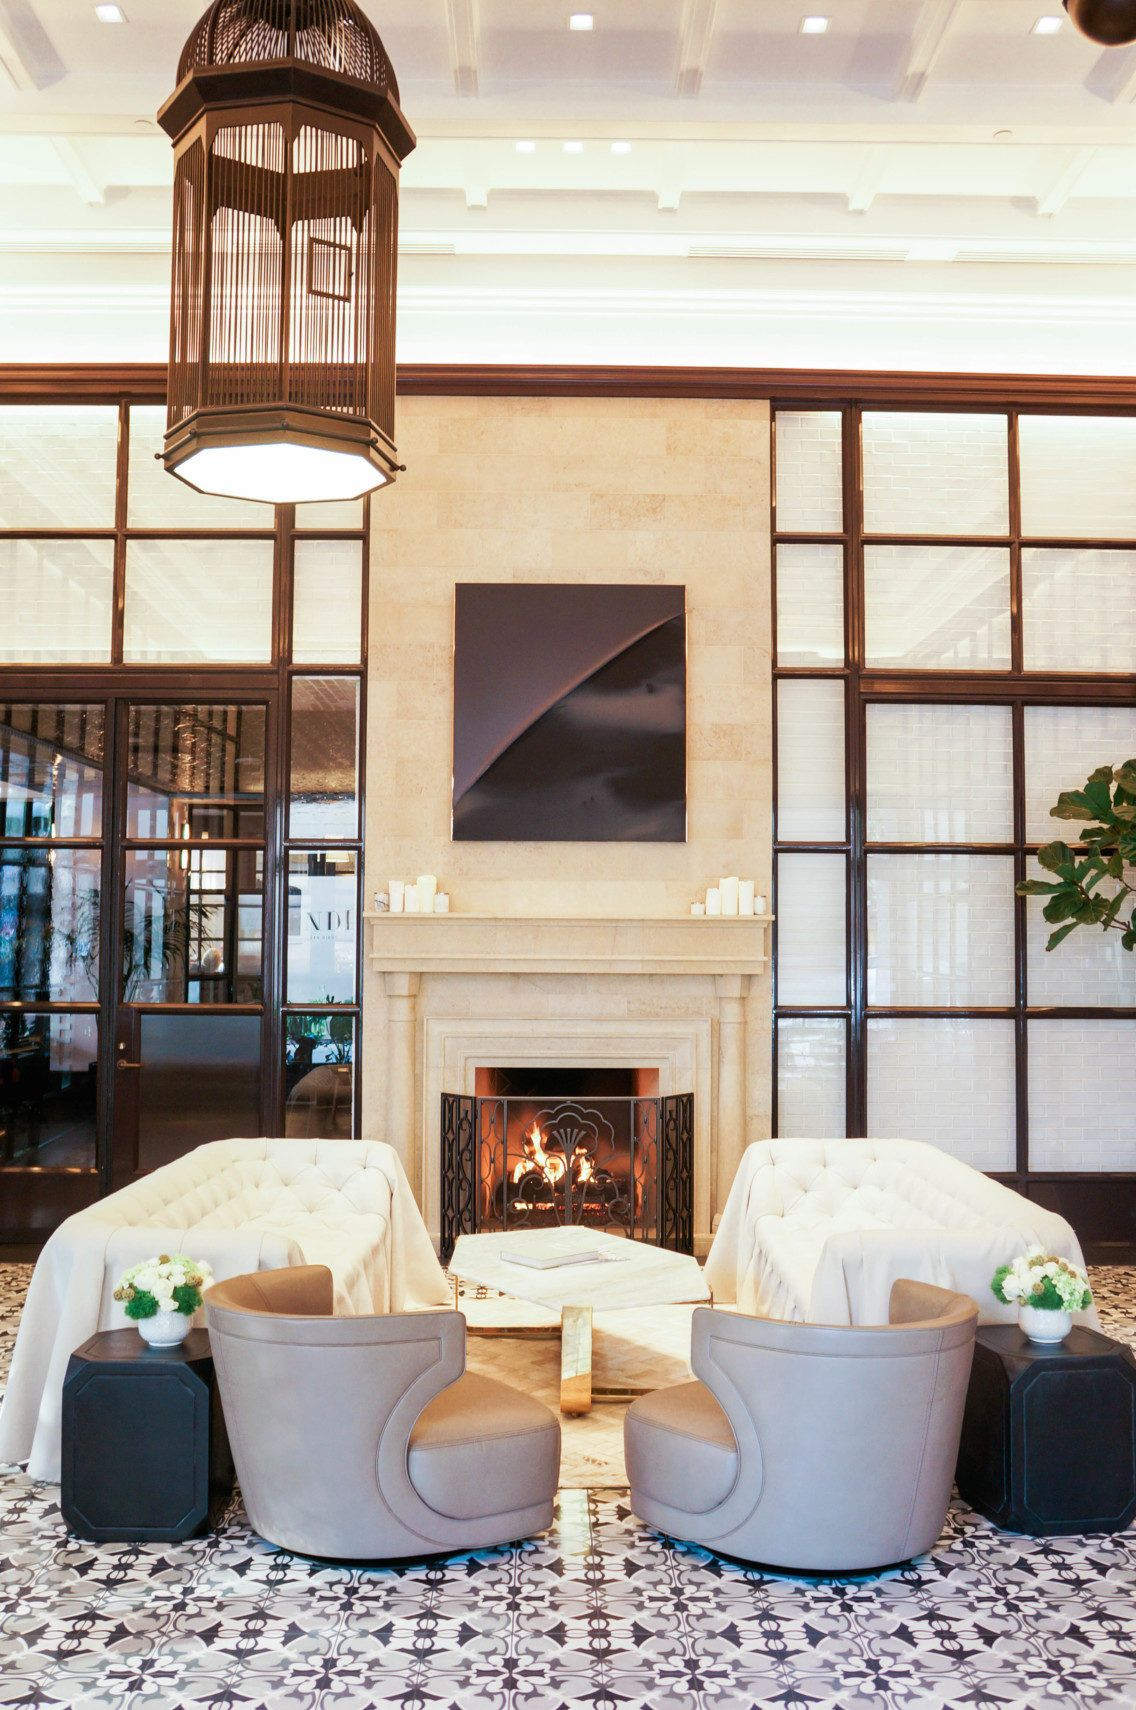 The Coolest Hotel In San Diego: The Pendry Hotel